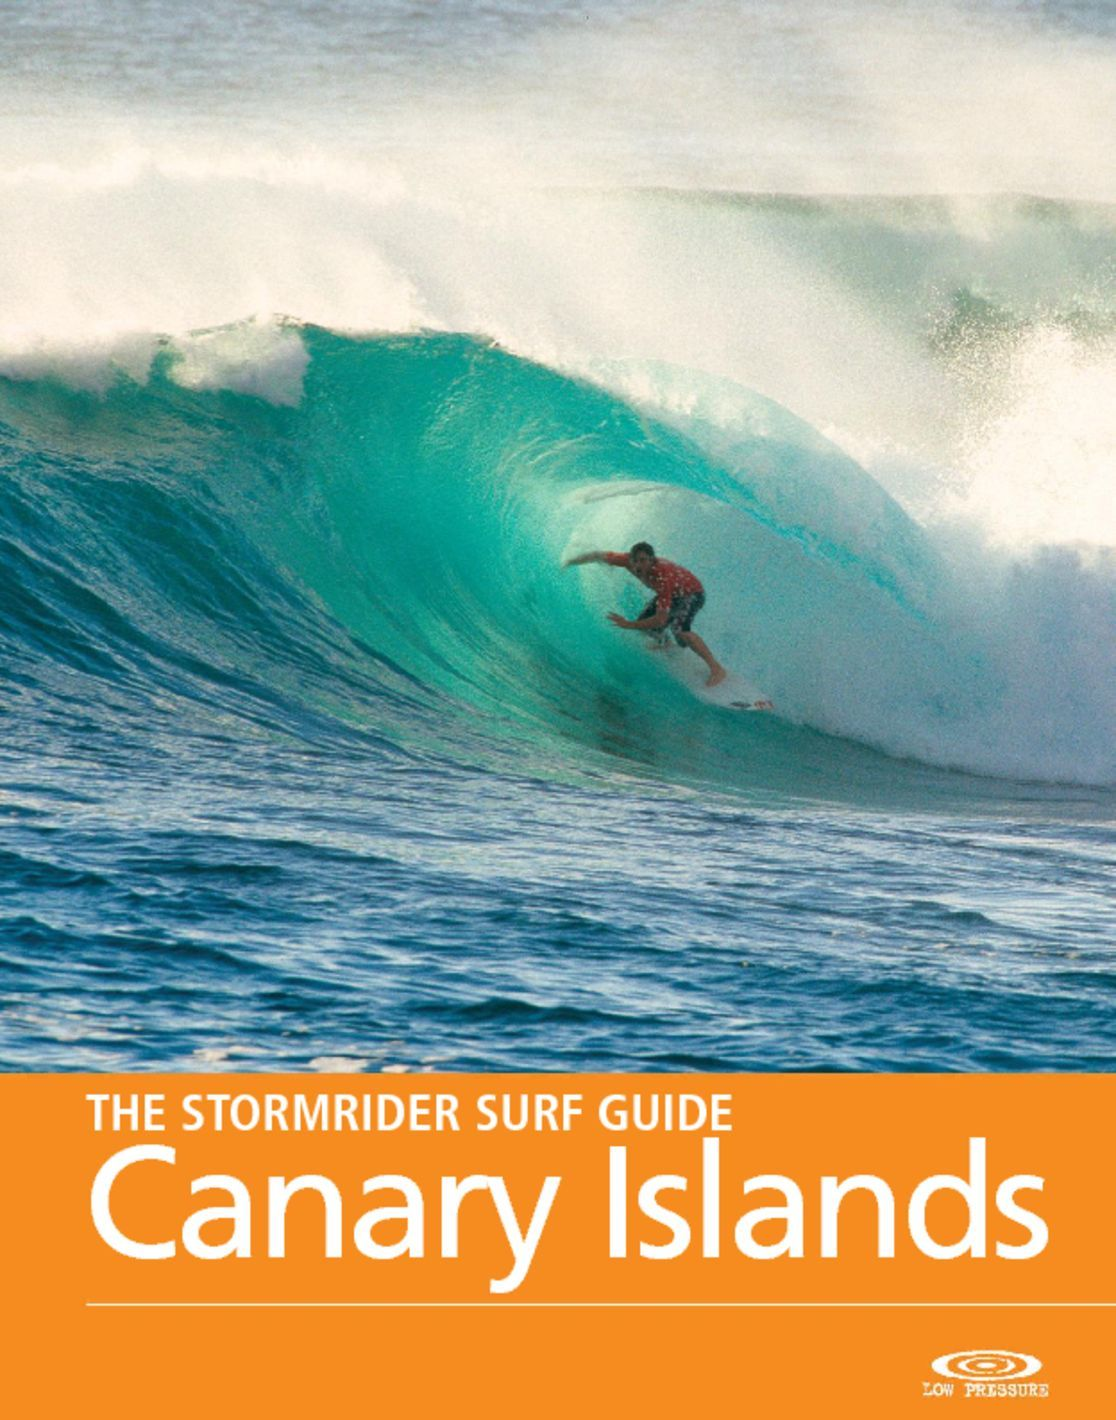 The Stormrider Surf Guide Canary Islands Digital